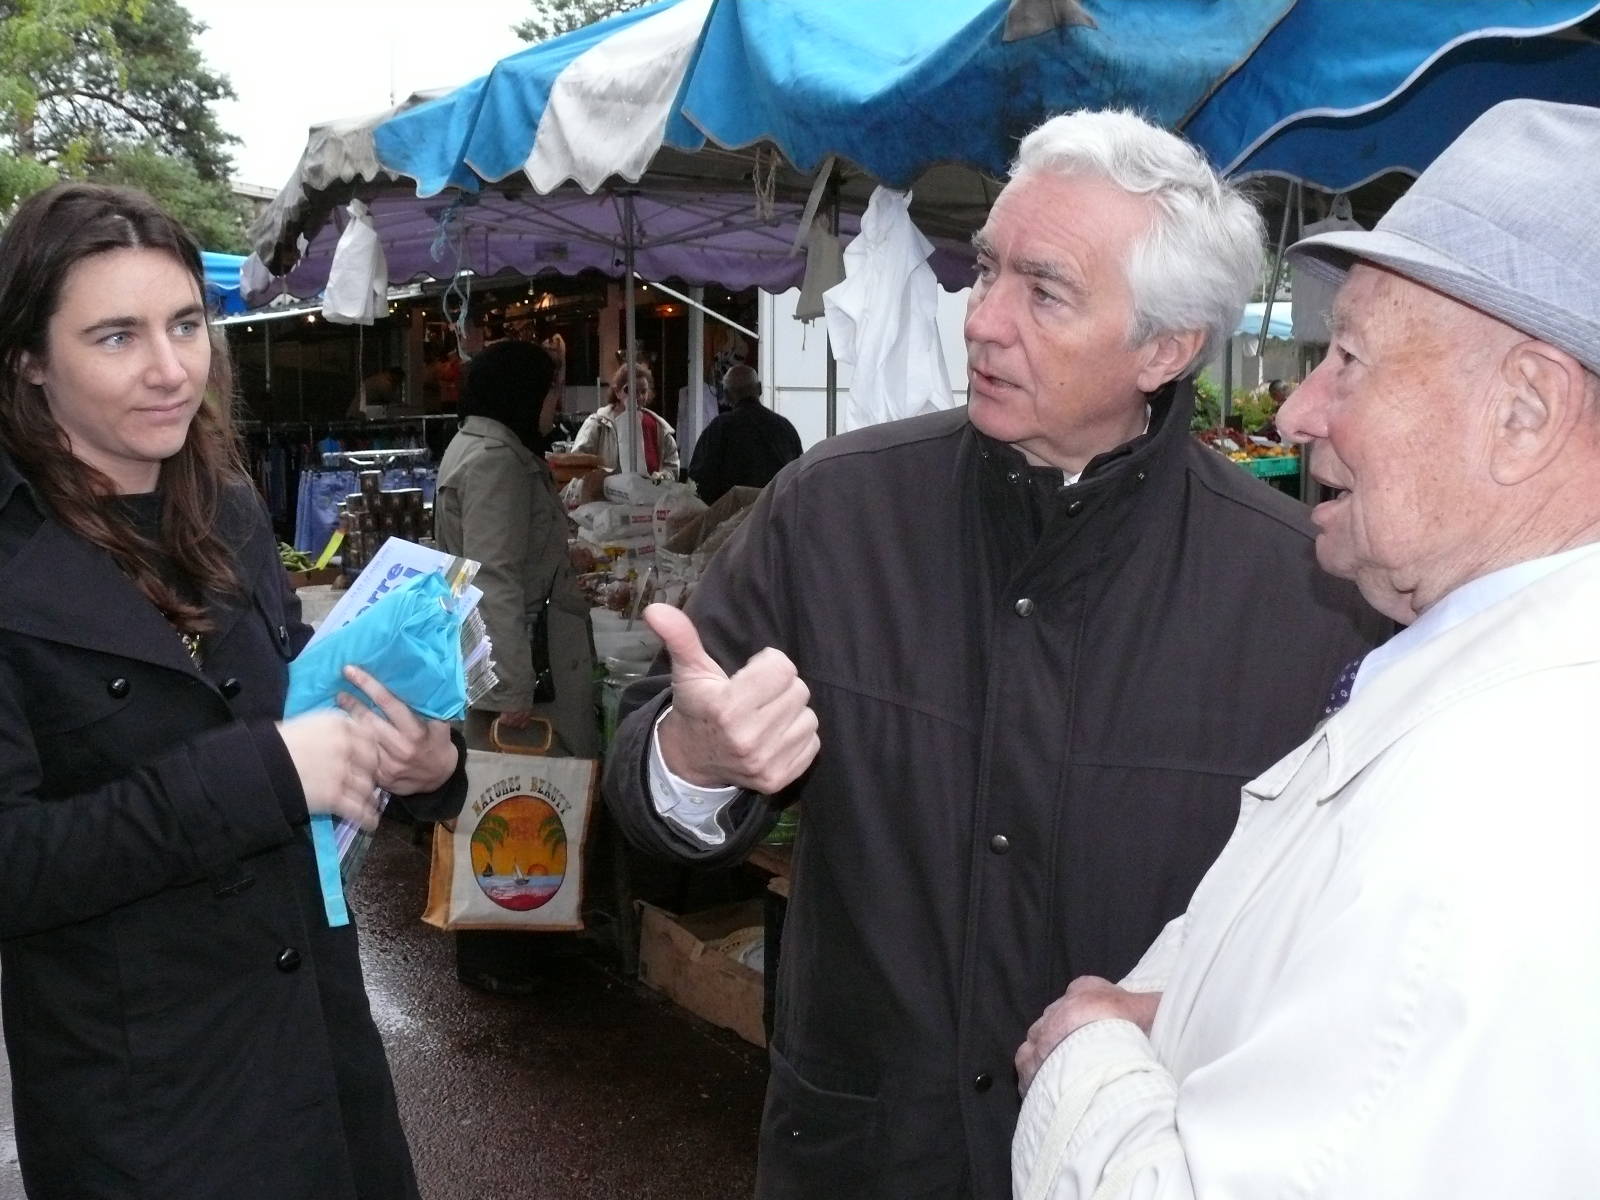 Jean-Pierre Abelin en campagne des legislatives en 2007